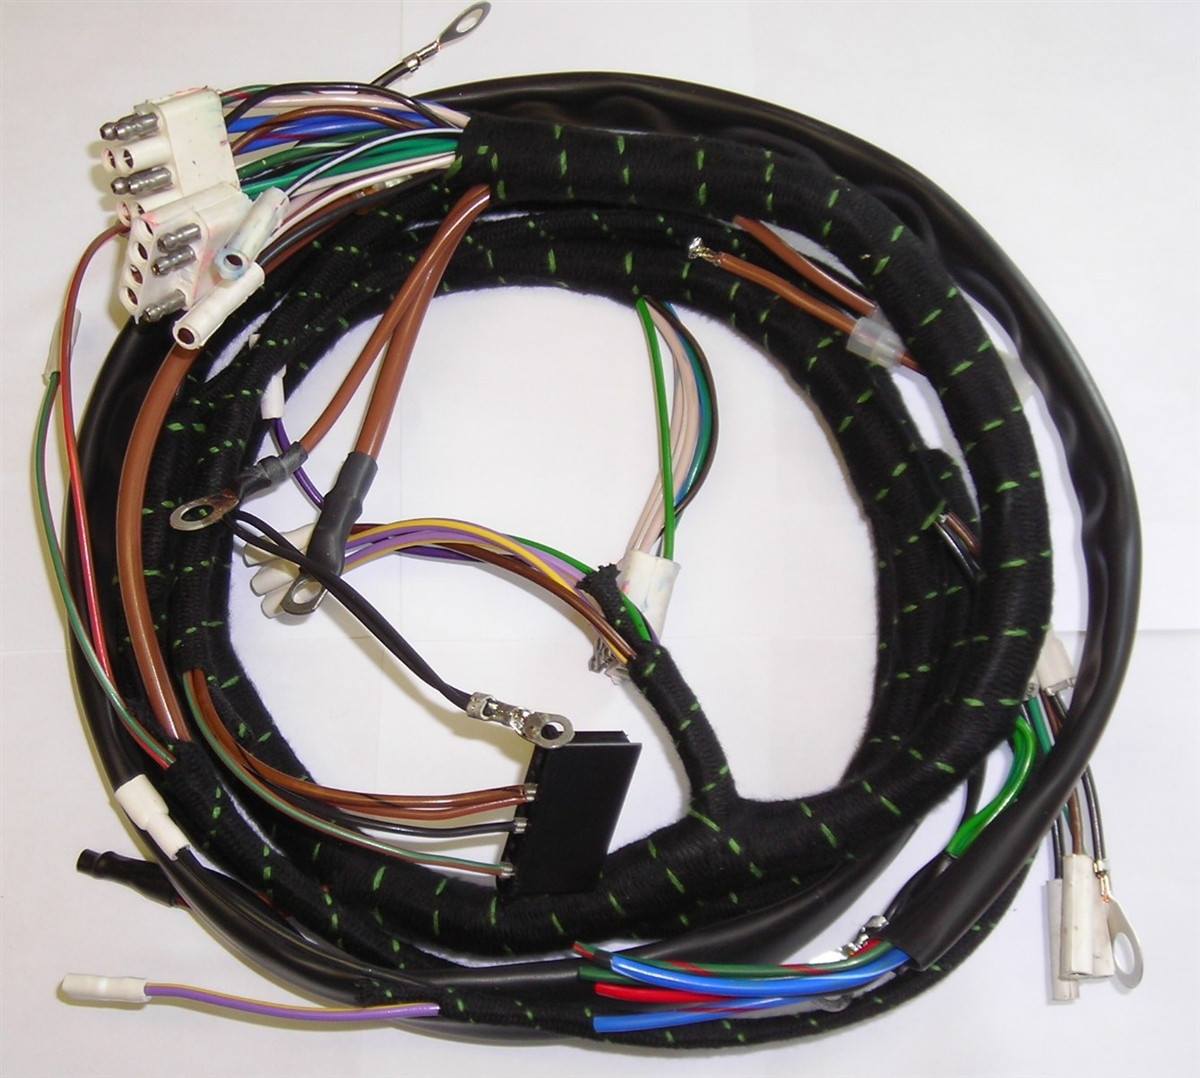 1309 2?1353488239 xke forward wiring harness jaguar wiring harness at fashall.co